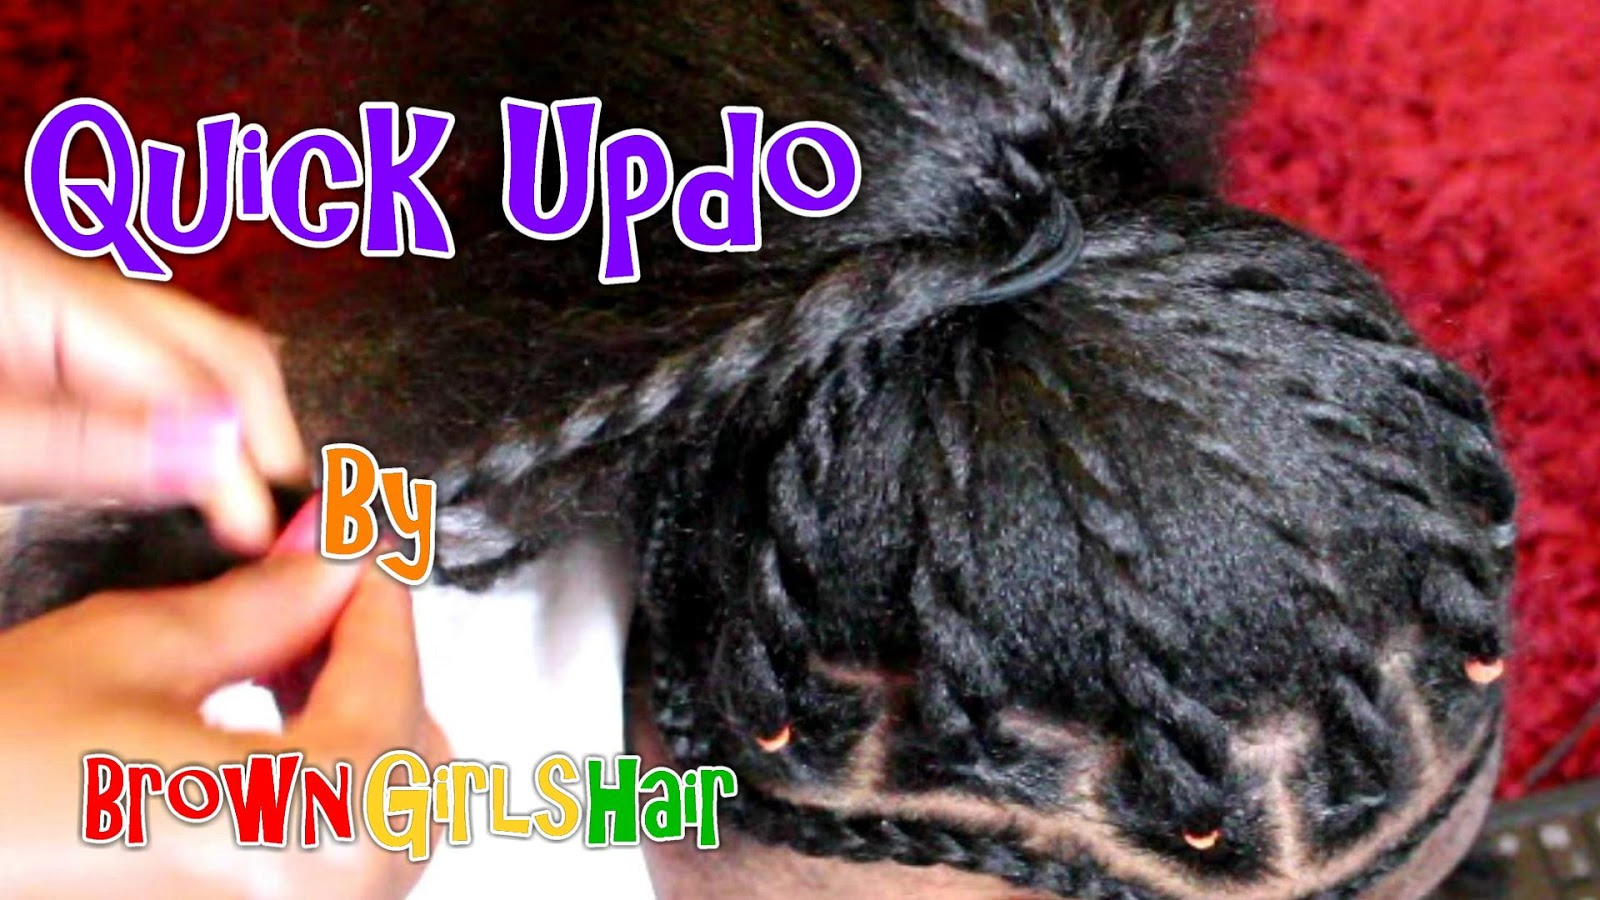 updo, tutorial, natural hair, hairstyles, girls, women, black hair care, biracial